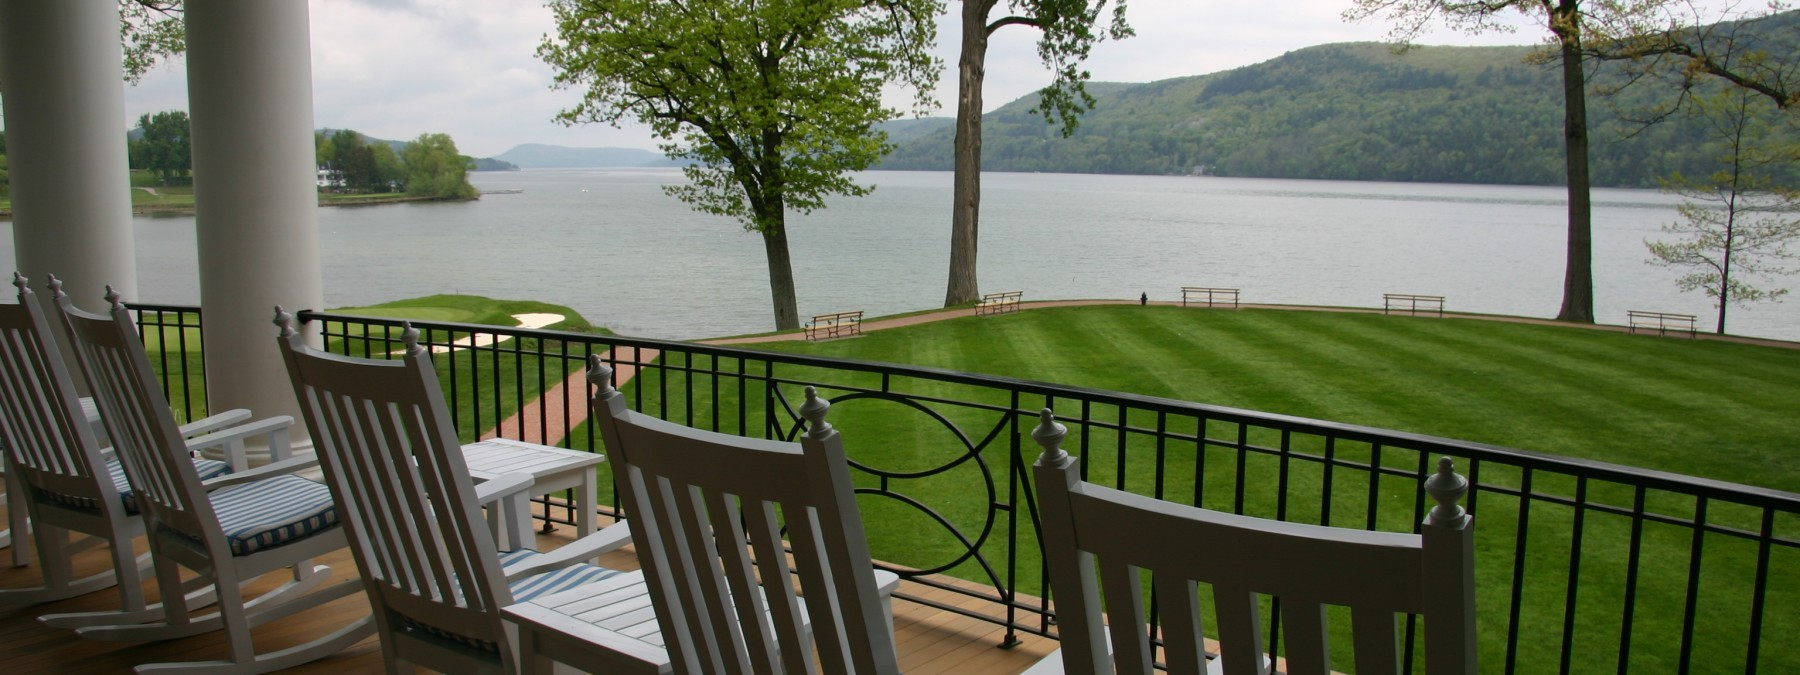 The 5 People You'll Meet in Cooperstown, NY